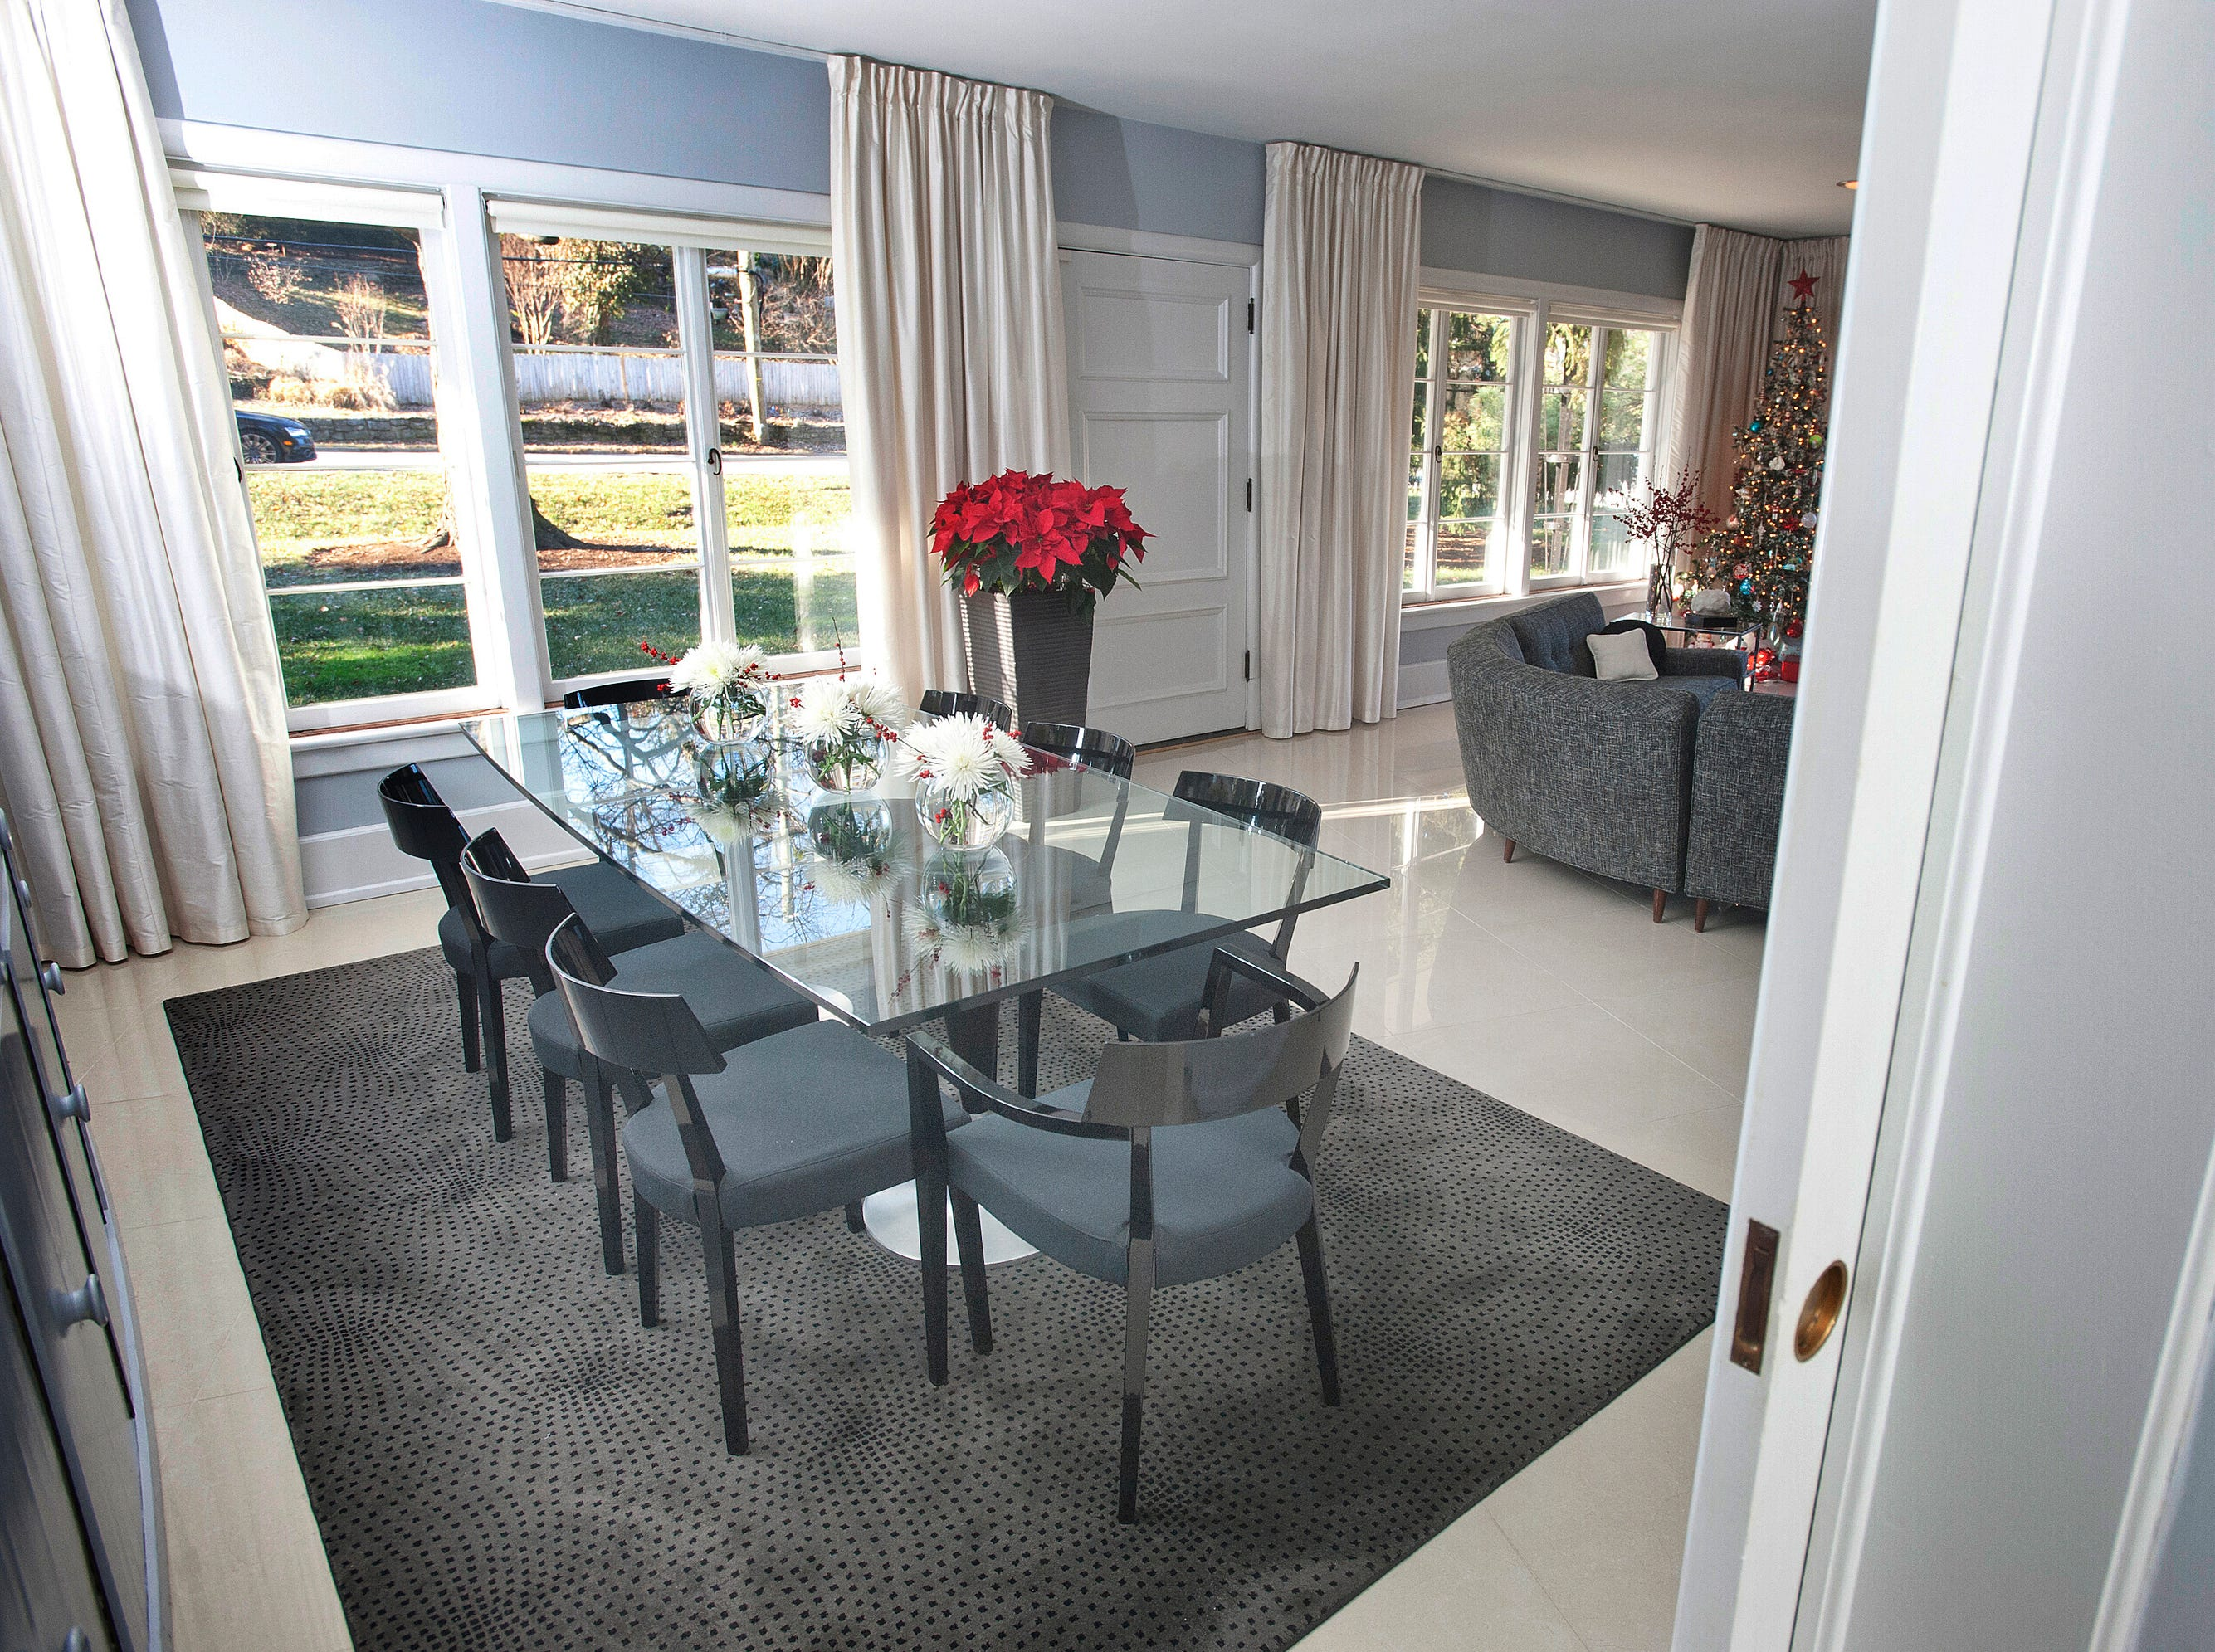 The dining room with glass table.10 December 2018